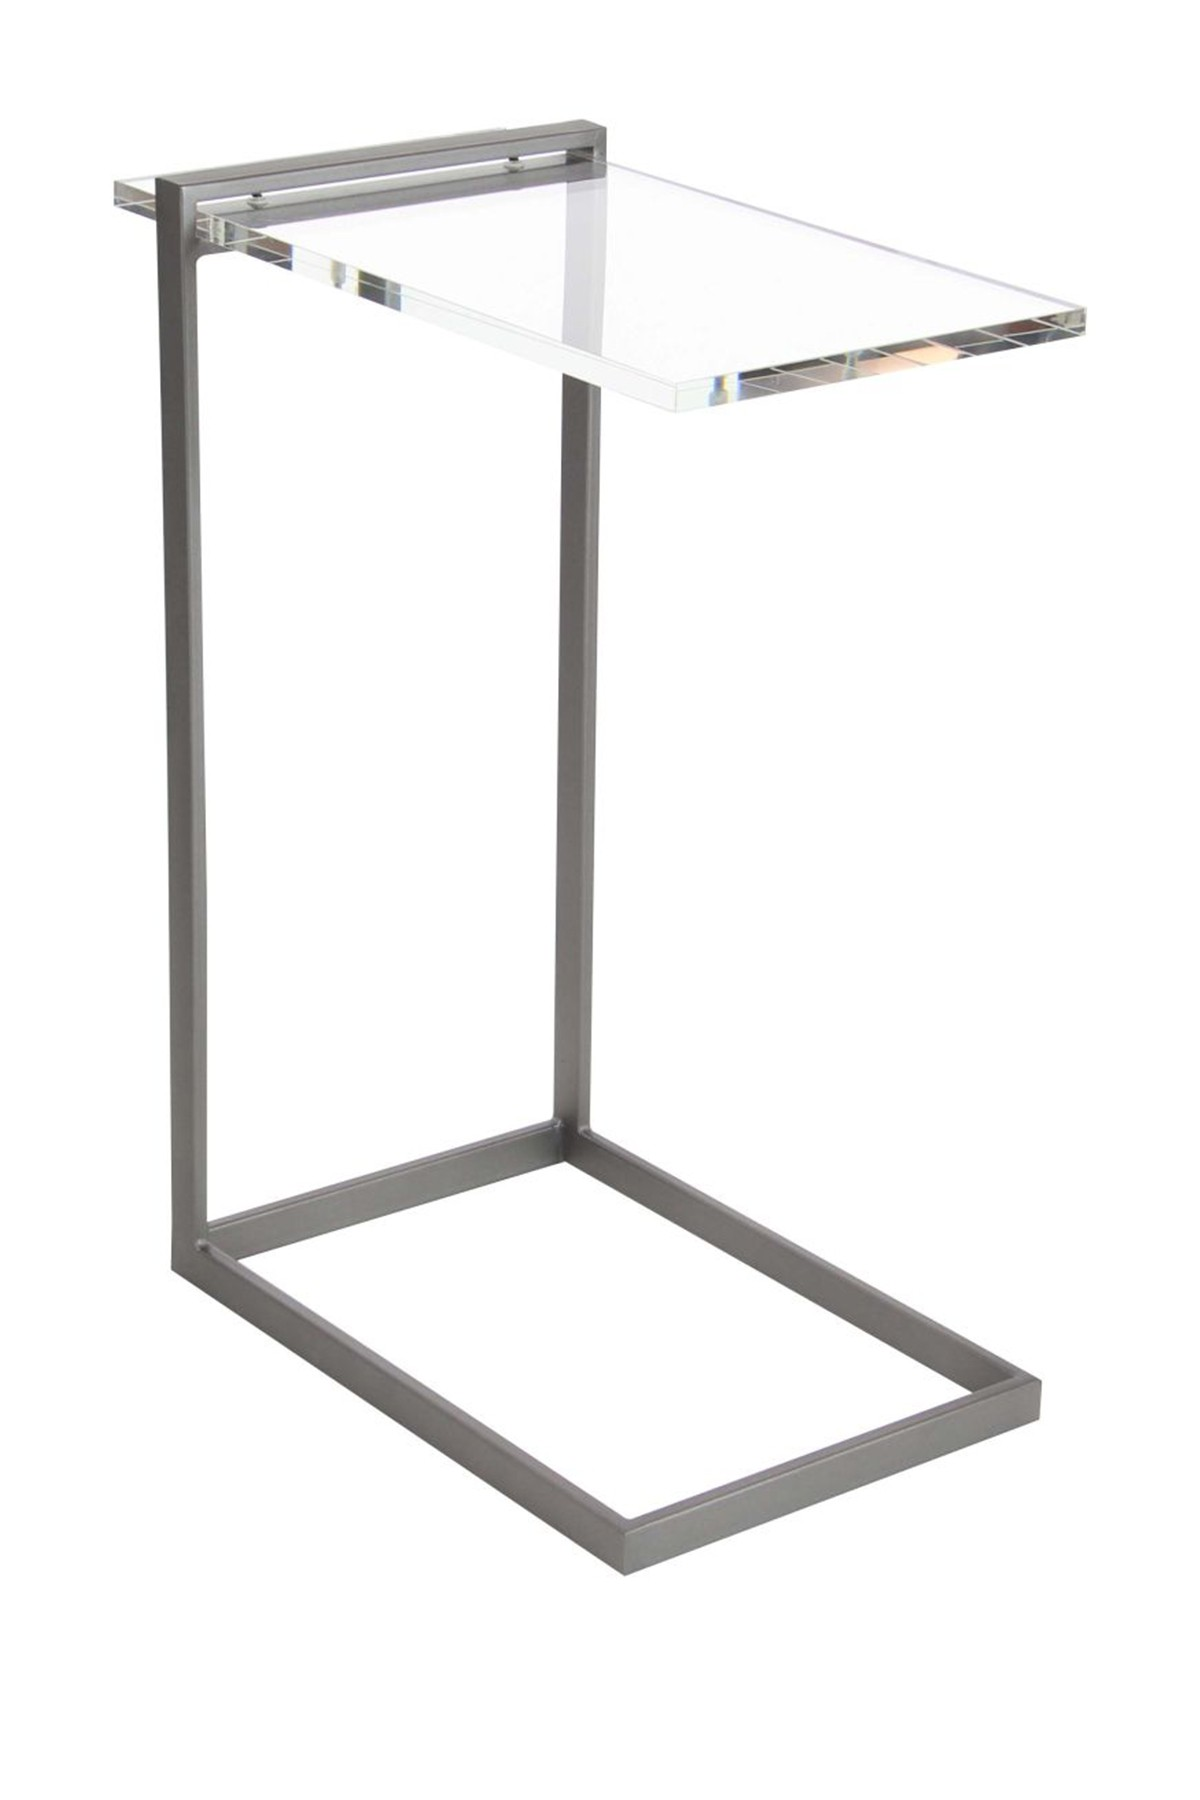 uma clear black acrylic accent table nordstrom rack cement dining room mid century modern lamps hardwood door threshold small stand patio oak console with drawers inch square